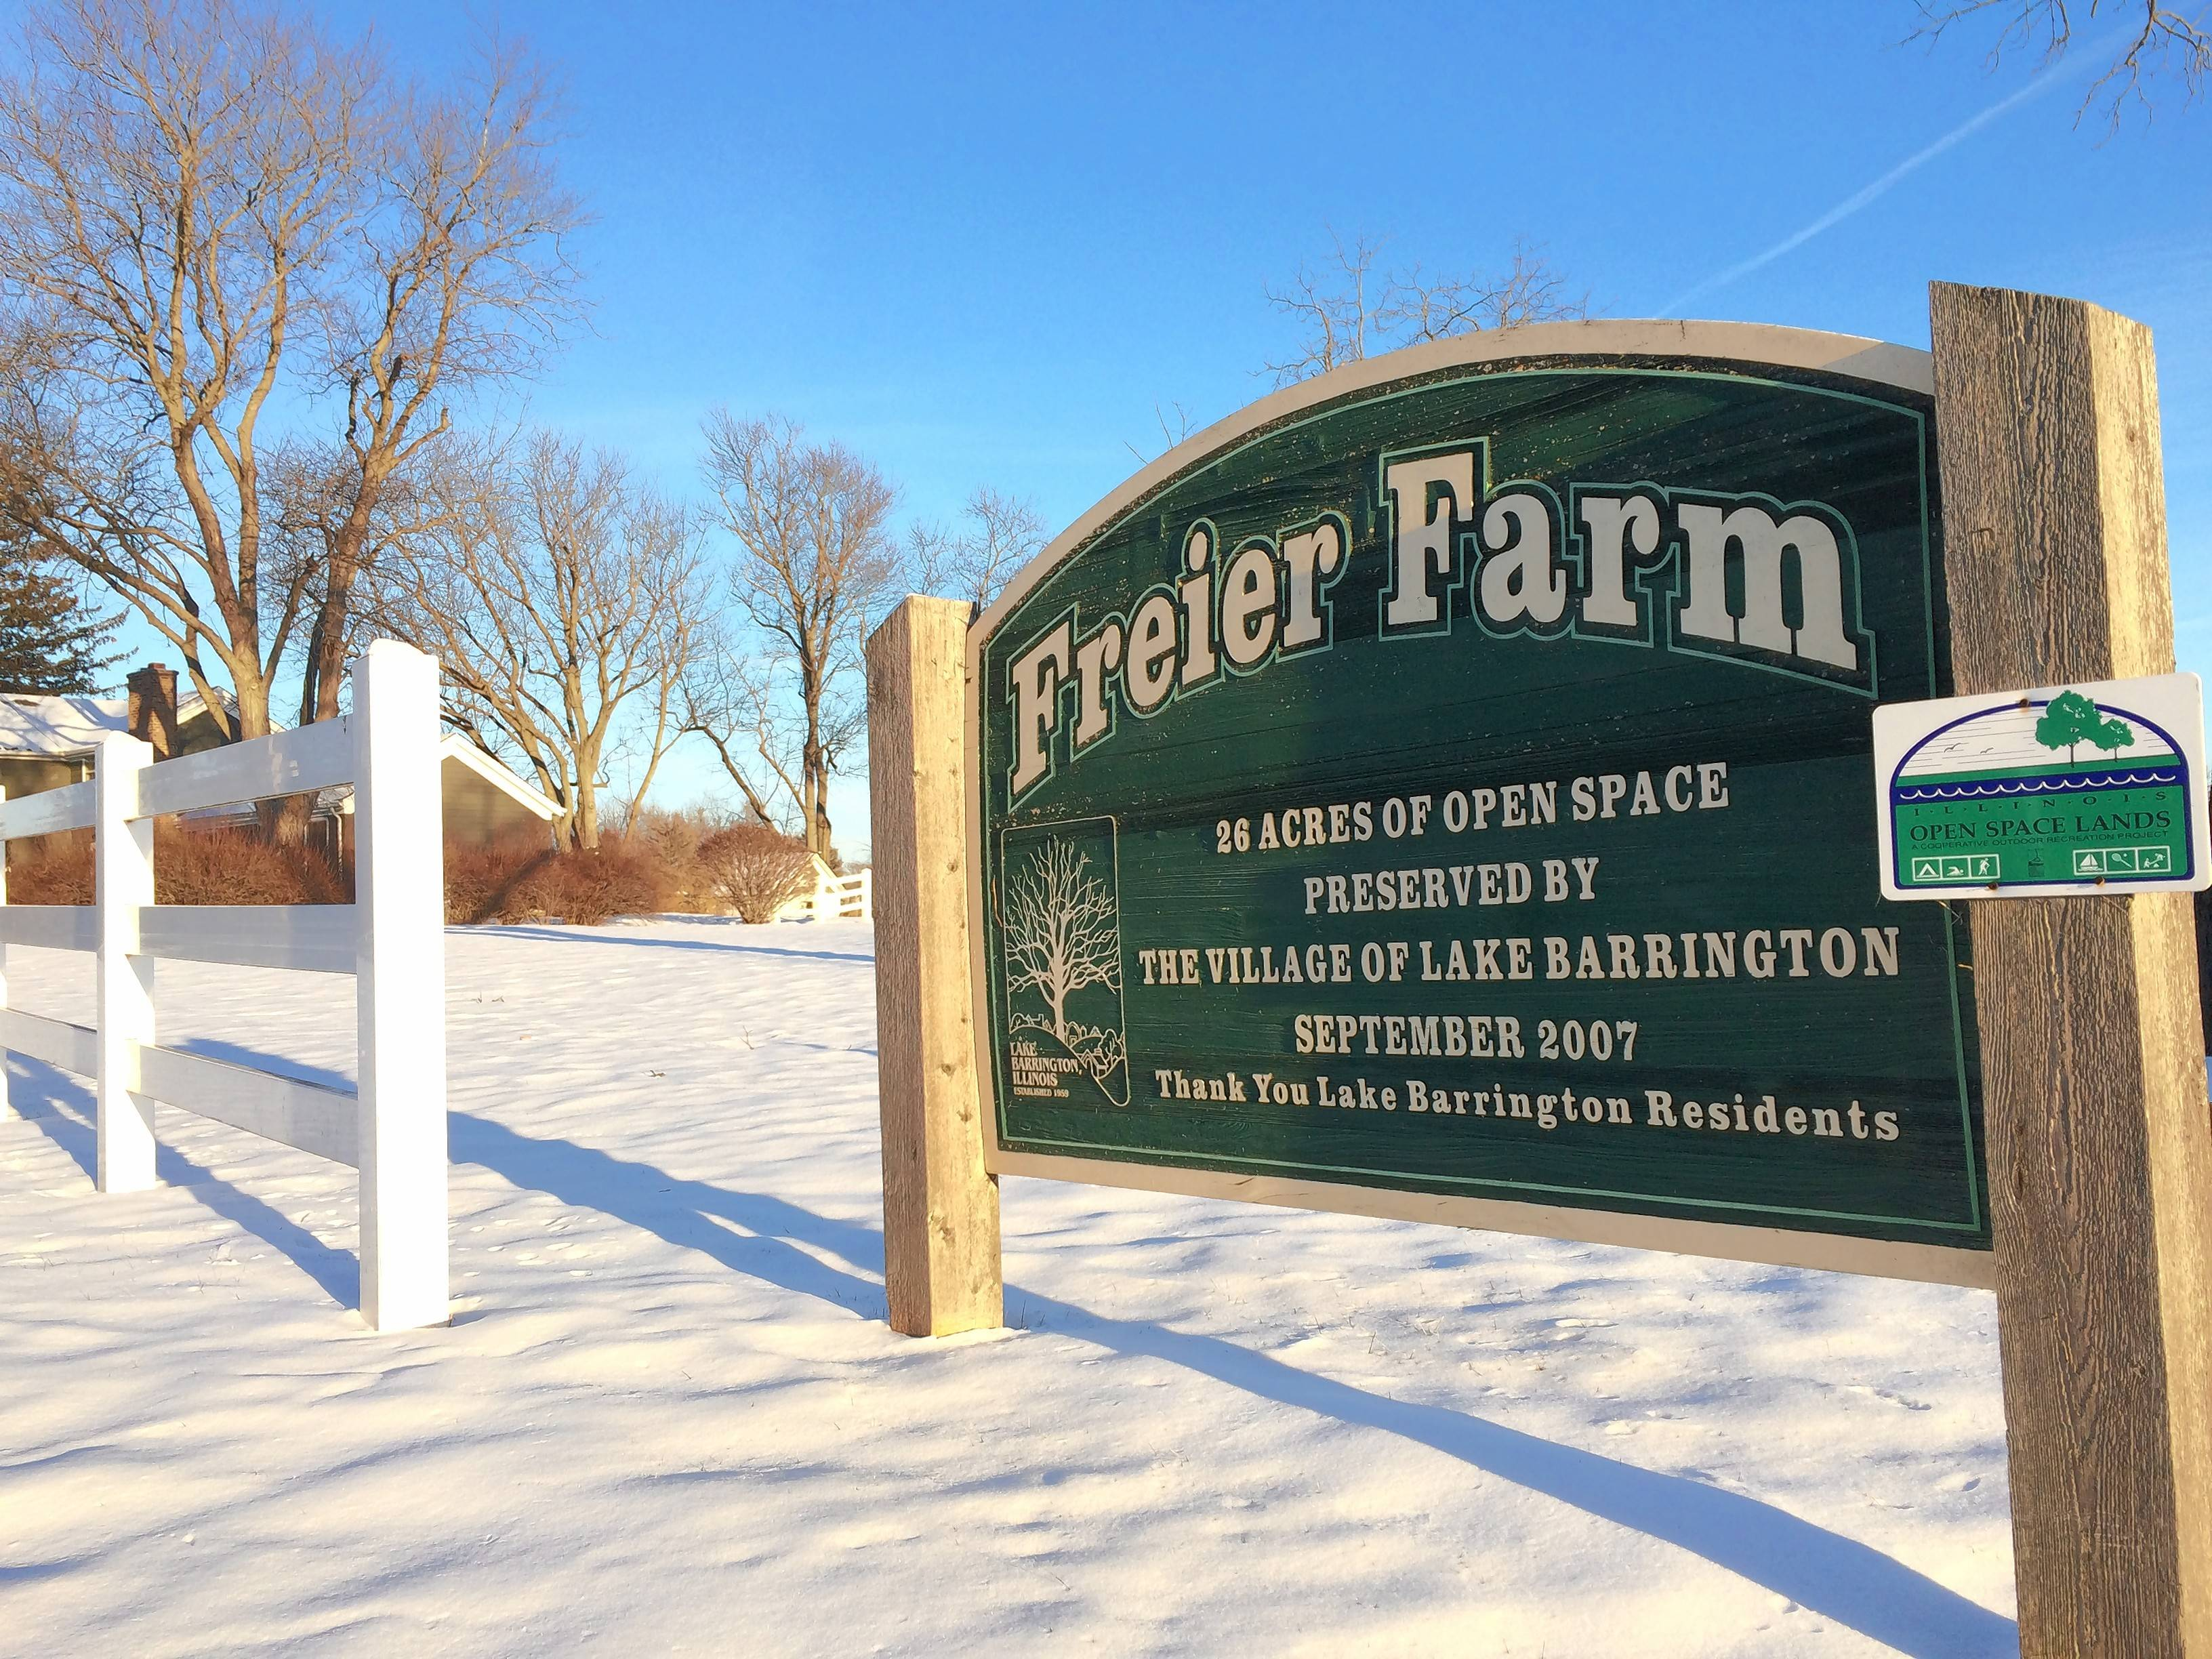 Lake Barrington spent $2.1 million to buy land that became known as Freier Farm in 2007.